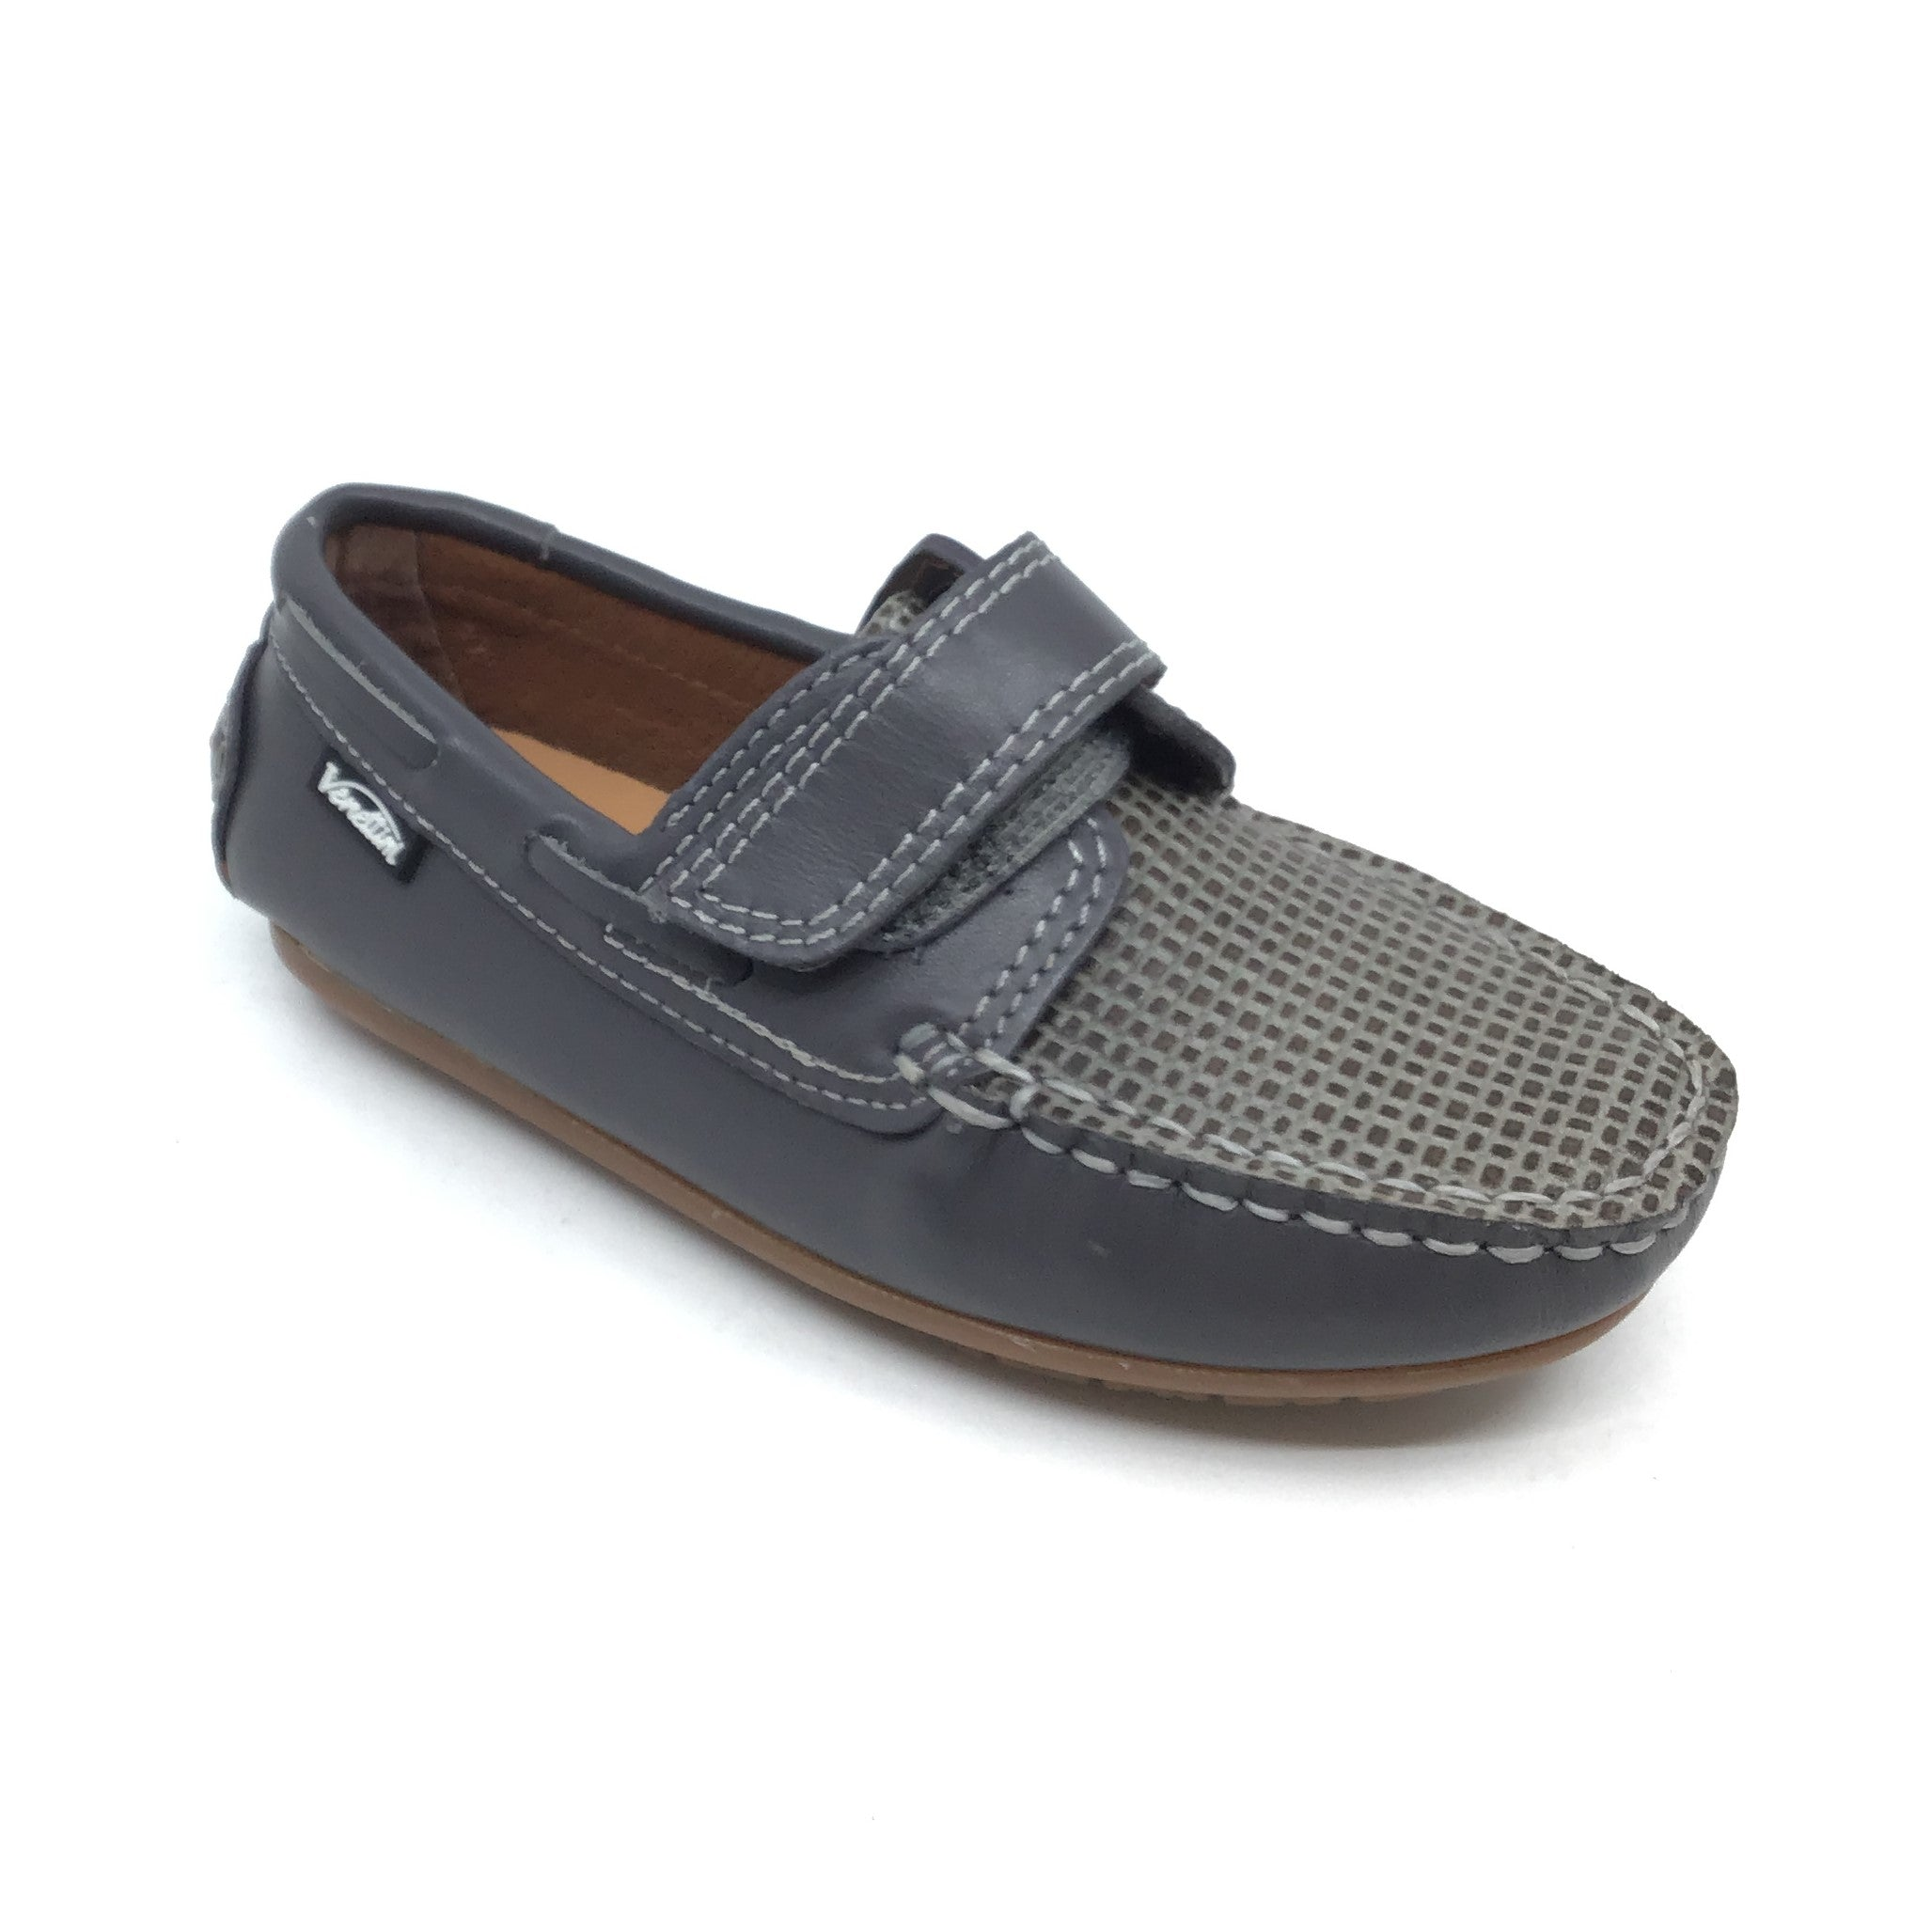 Venettini Gray Velcro Loafer with Front Texture